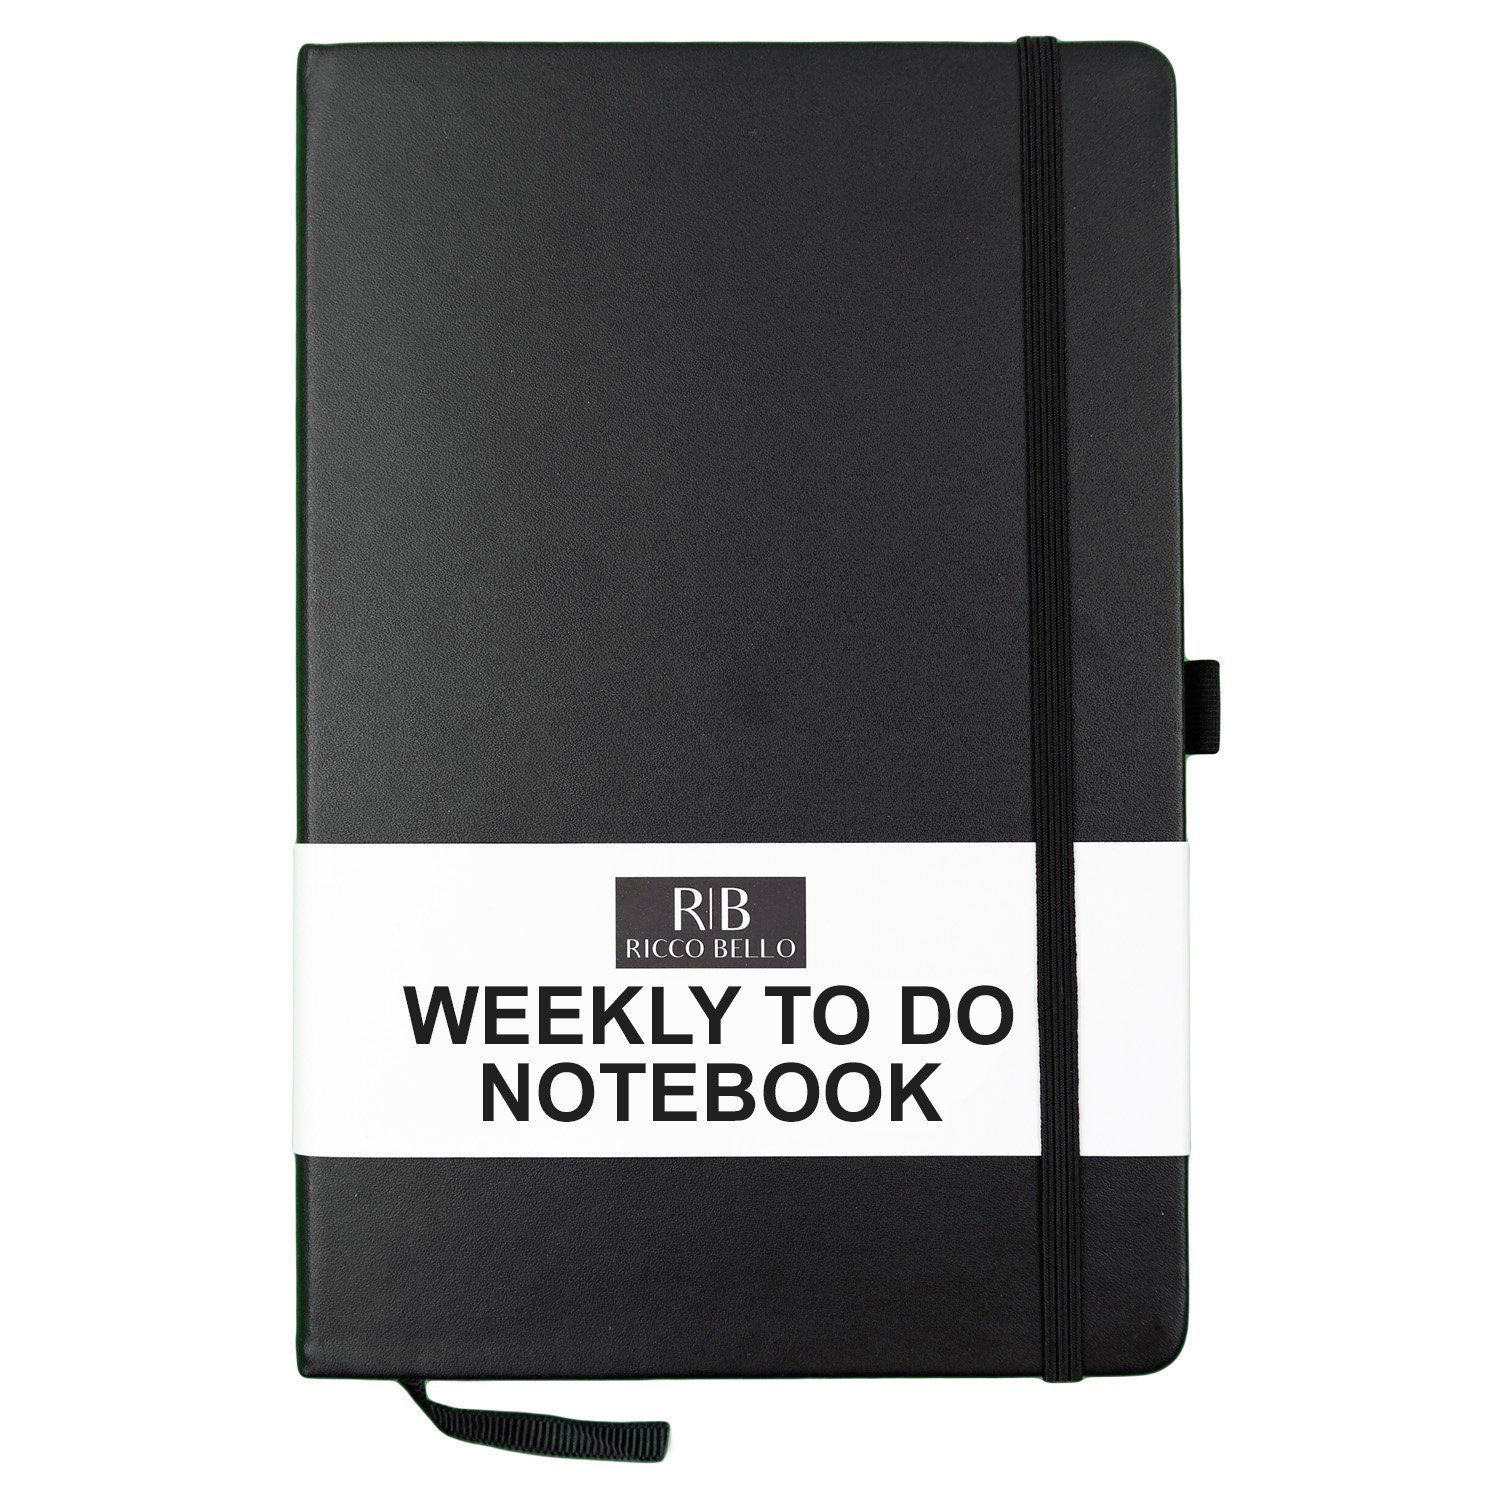 Ricco Bello Weekly to Do Hardcover Notebook with Checklist, 5.7 x 8.4 inches (Black)